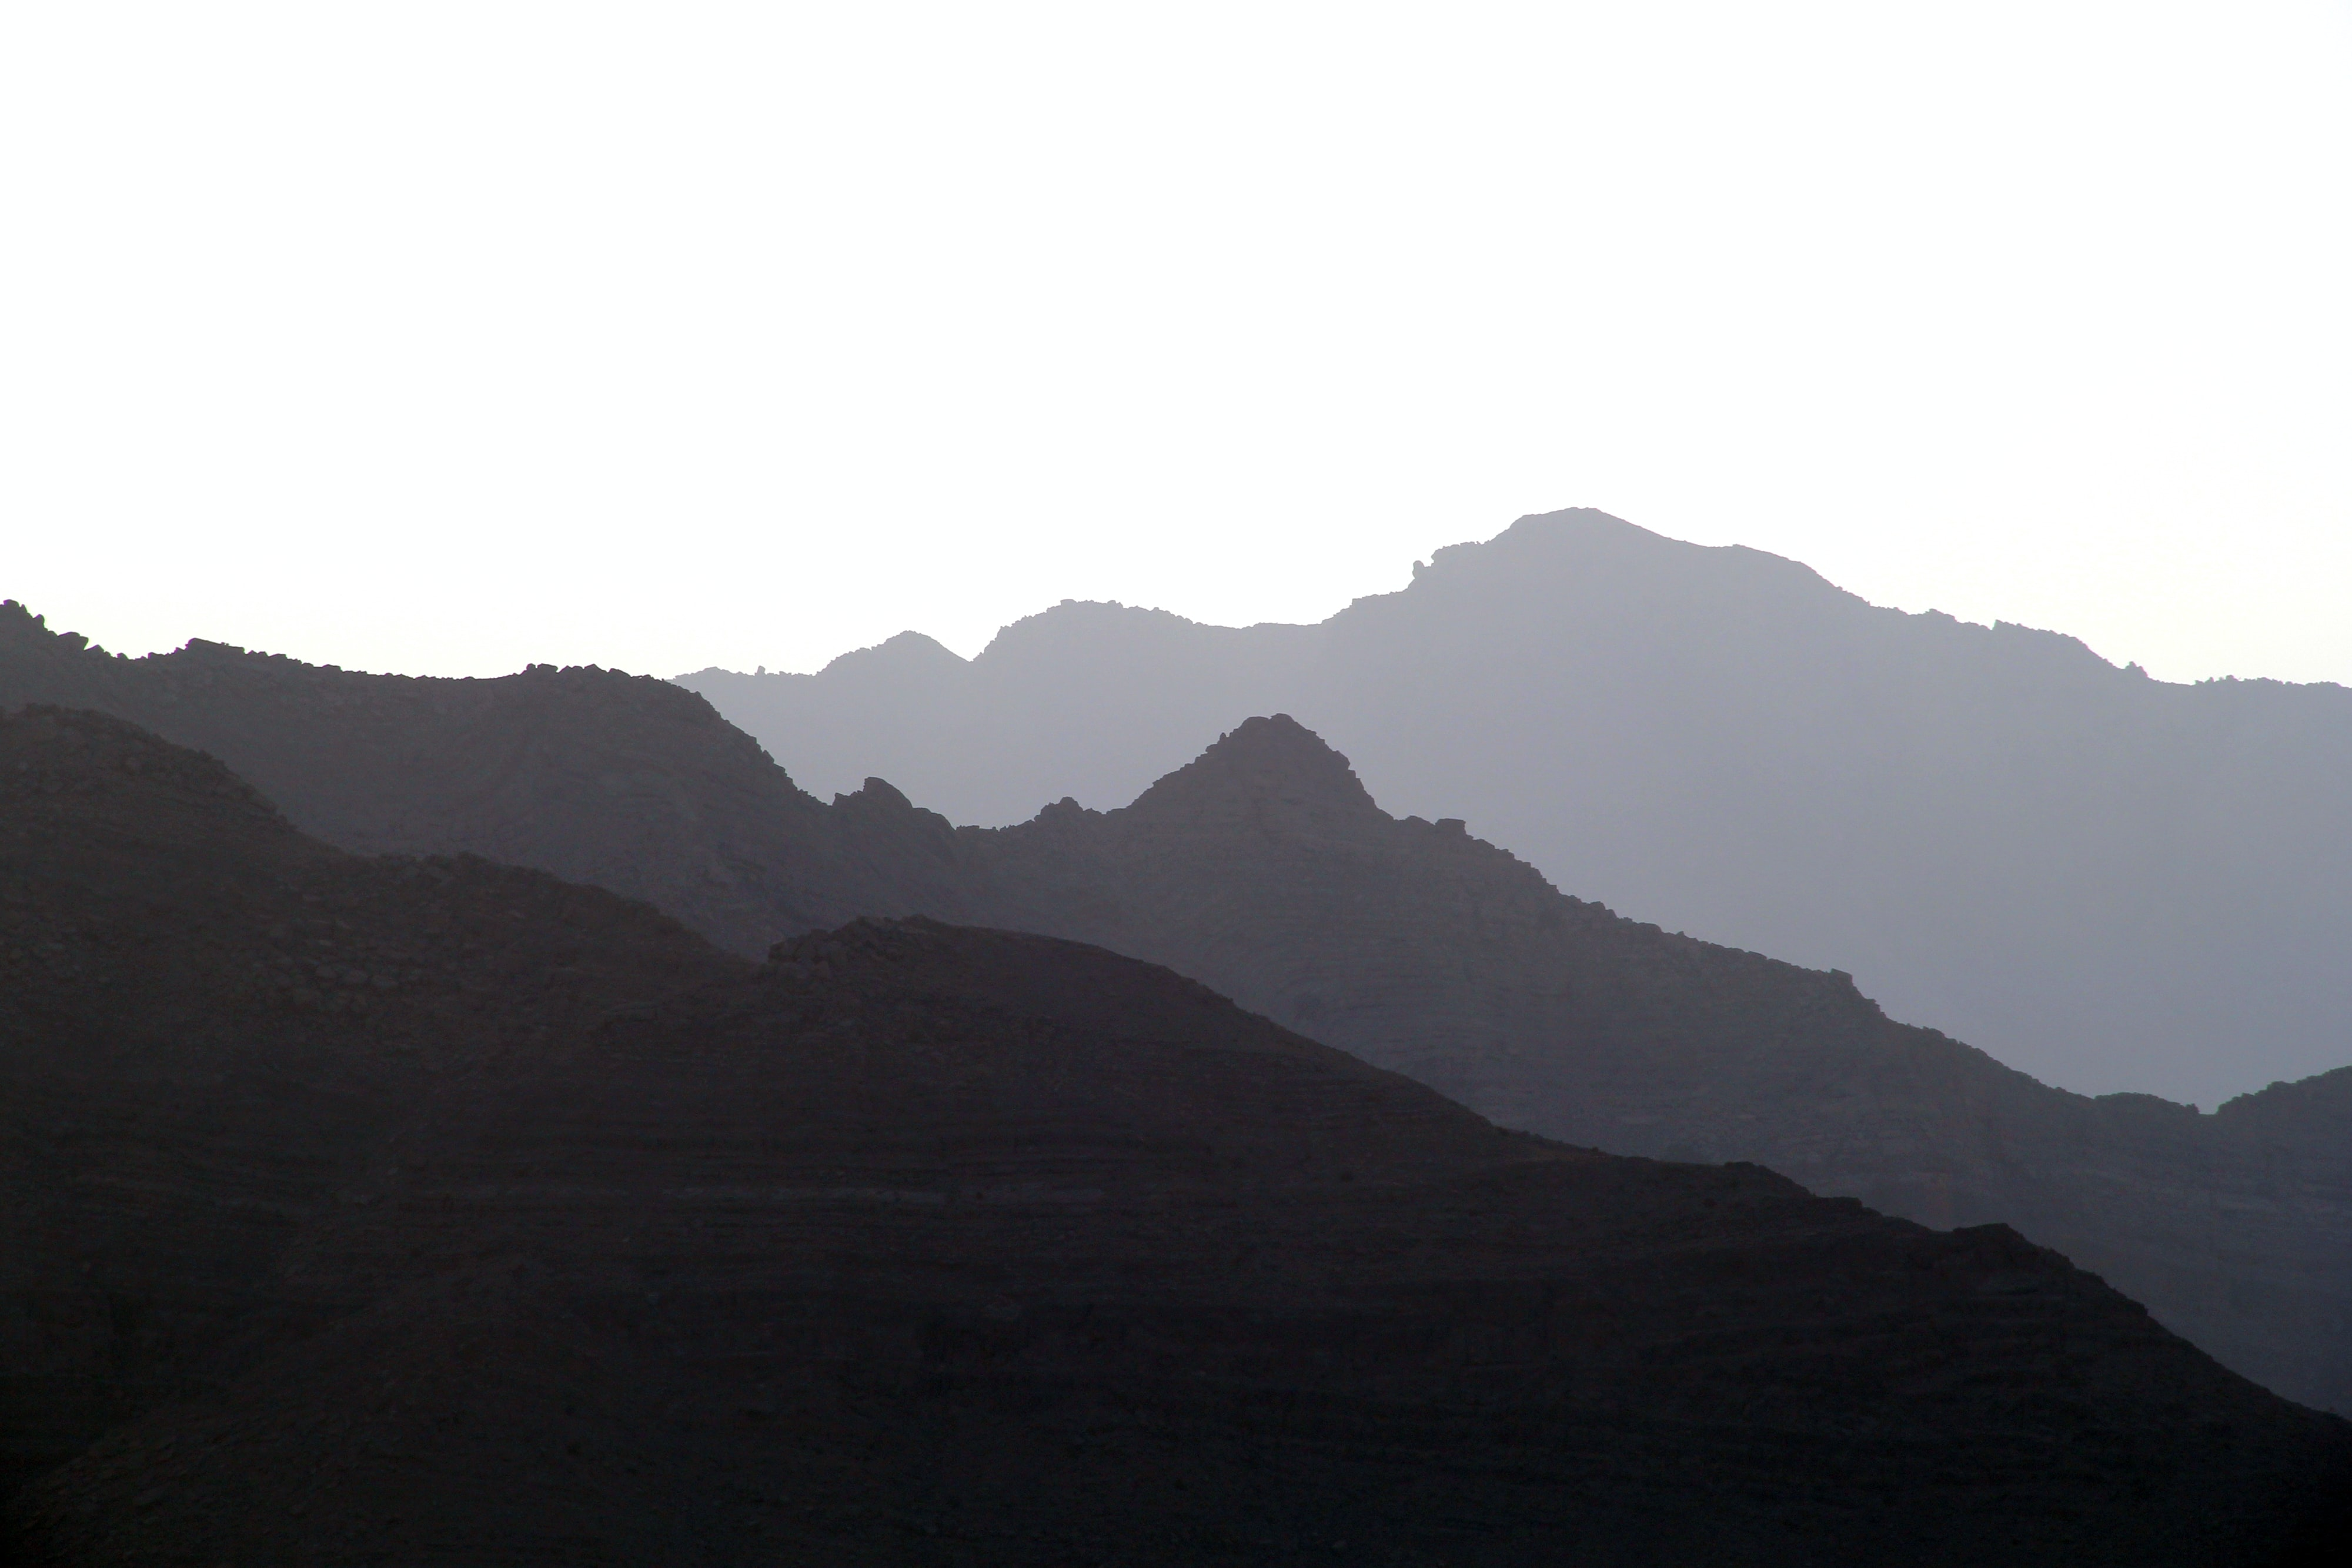 Dark silhouettes of rocky mountain ridges under a pale white sky